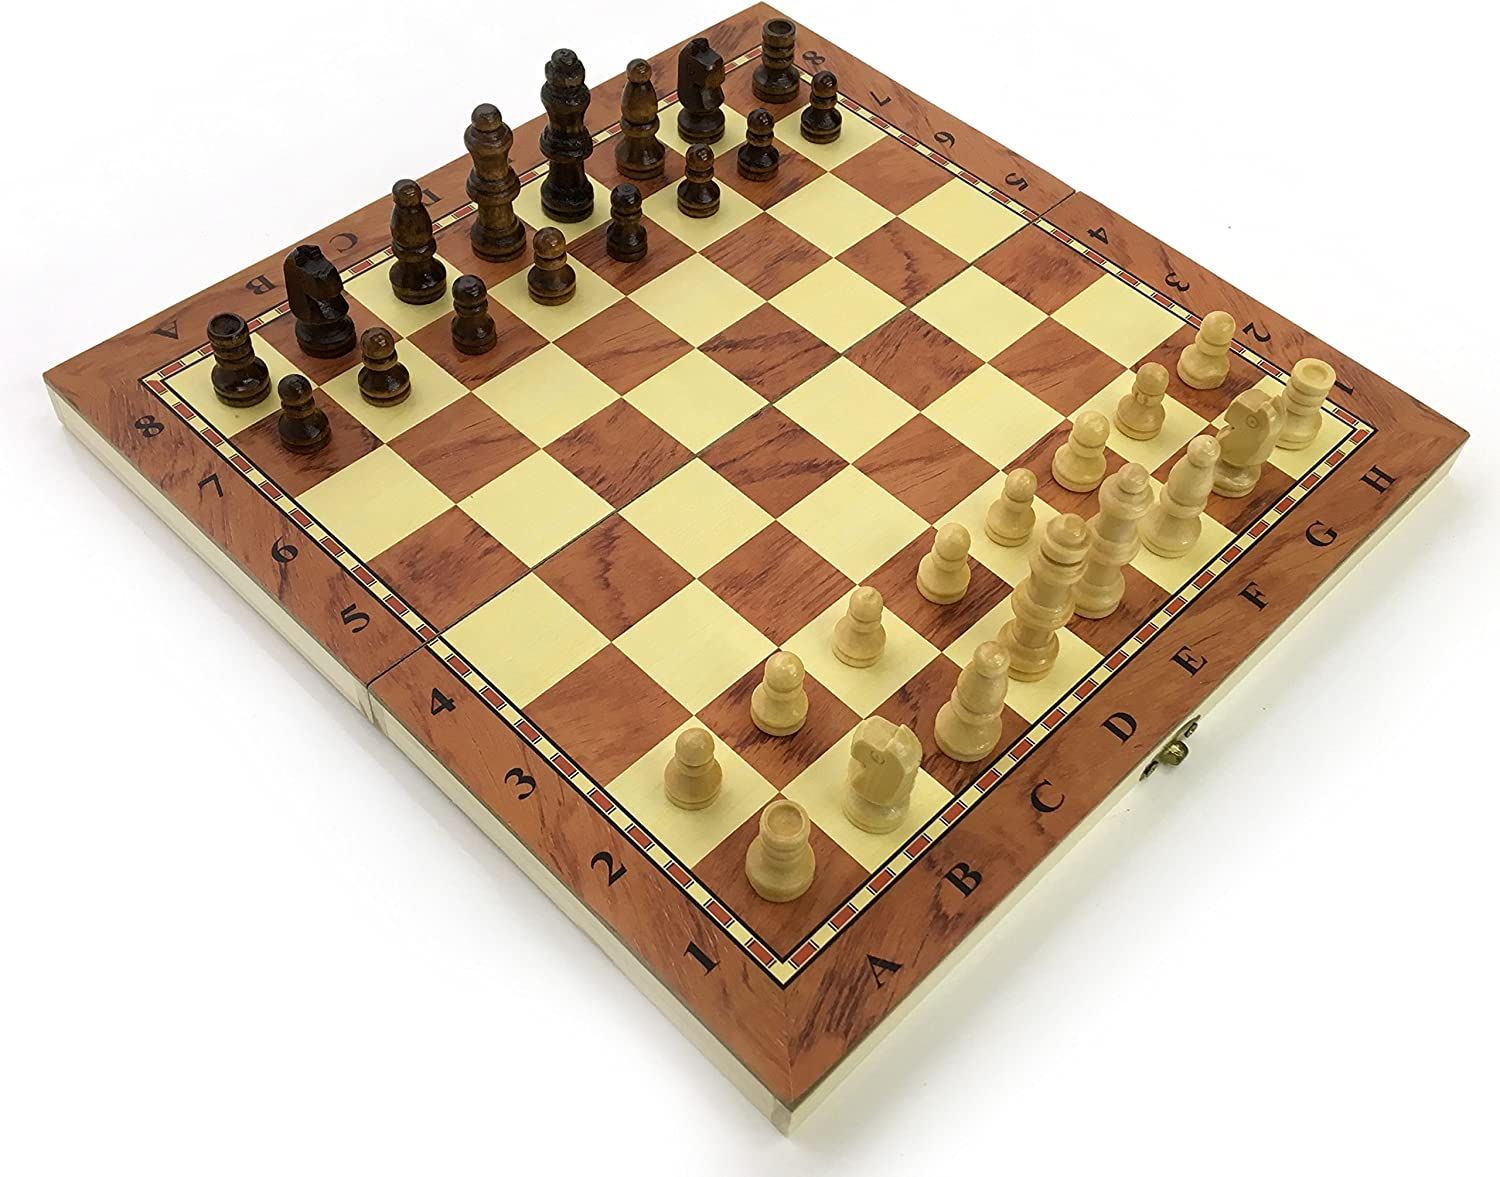 Chess Set Fold Away Board Quality Handmade Wooden Pieces Complete FIDE Compliant Stimulate Your Brain Exercise Your Mind 24 cm 240 mm 10 inch: Amazon.es: Juguetes y juegos